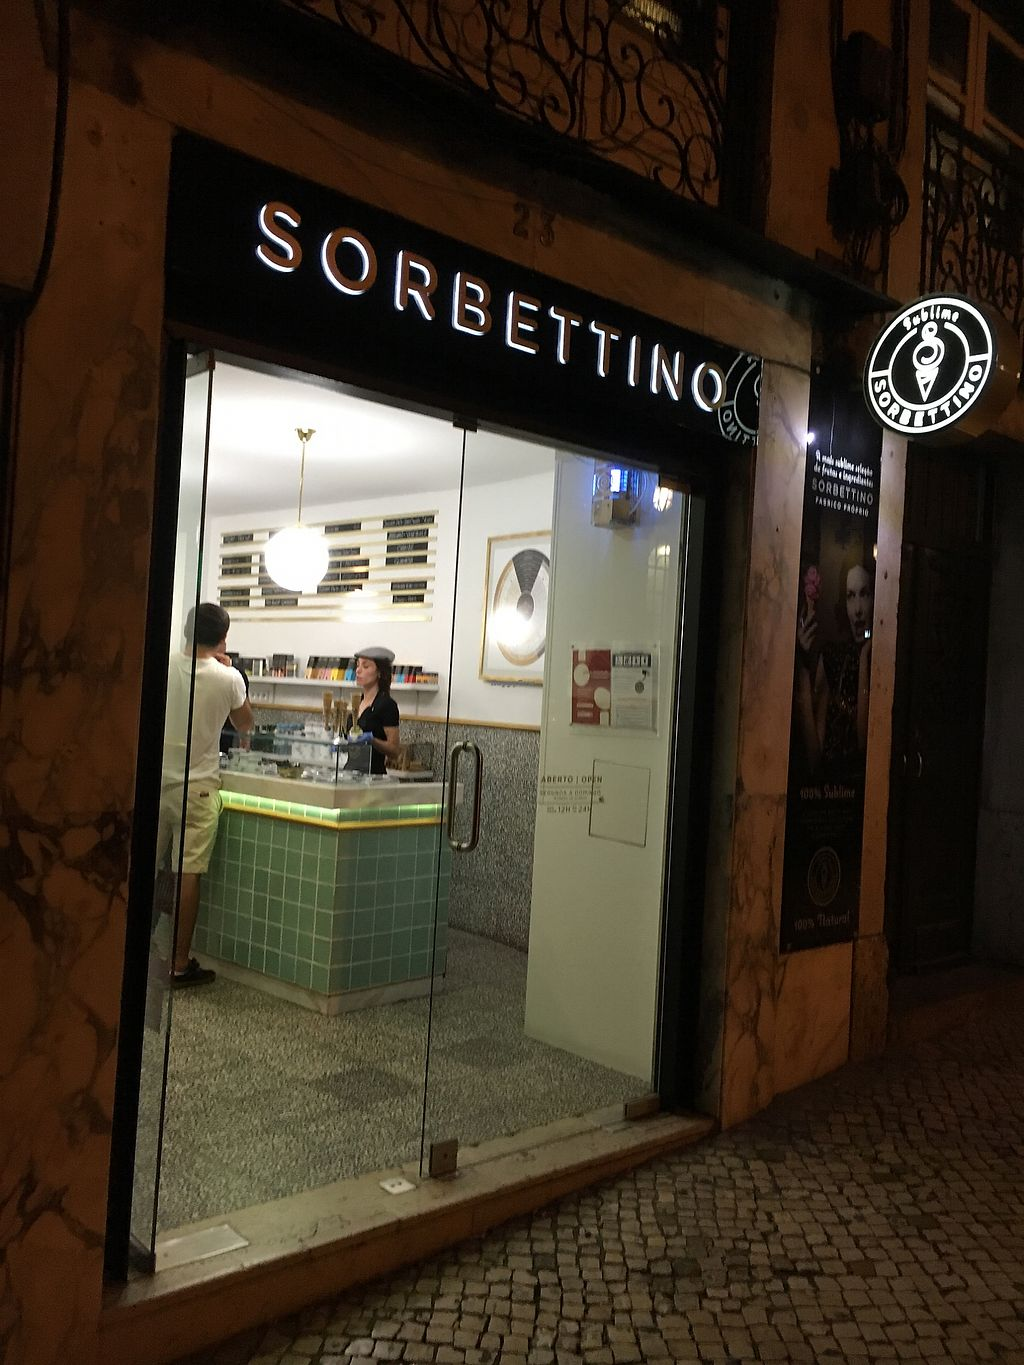 """Photo of Sublime Sorbettino  by <a href=""""/members/profile/hack_man"""">hack_man</a> <br/>Outside  <br/> September 9, 2017  - <a href='/contact/abuse/image/97376/302635'>Report</a>"""